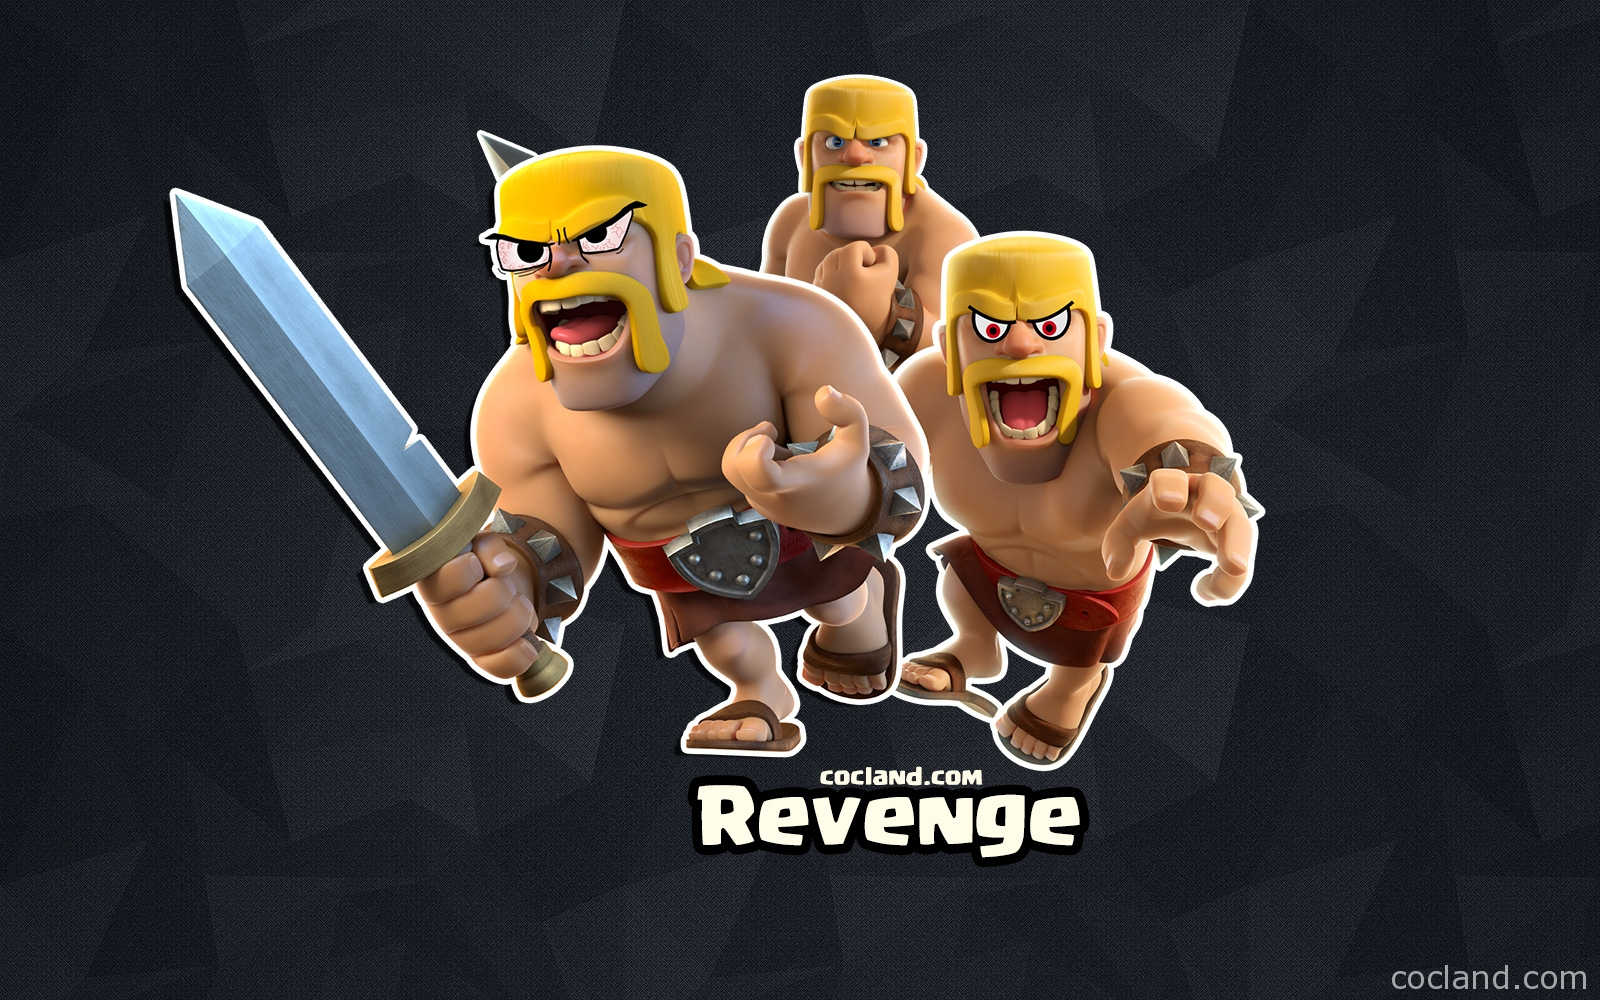 Clash of Clans Revenge Guide